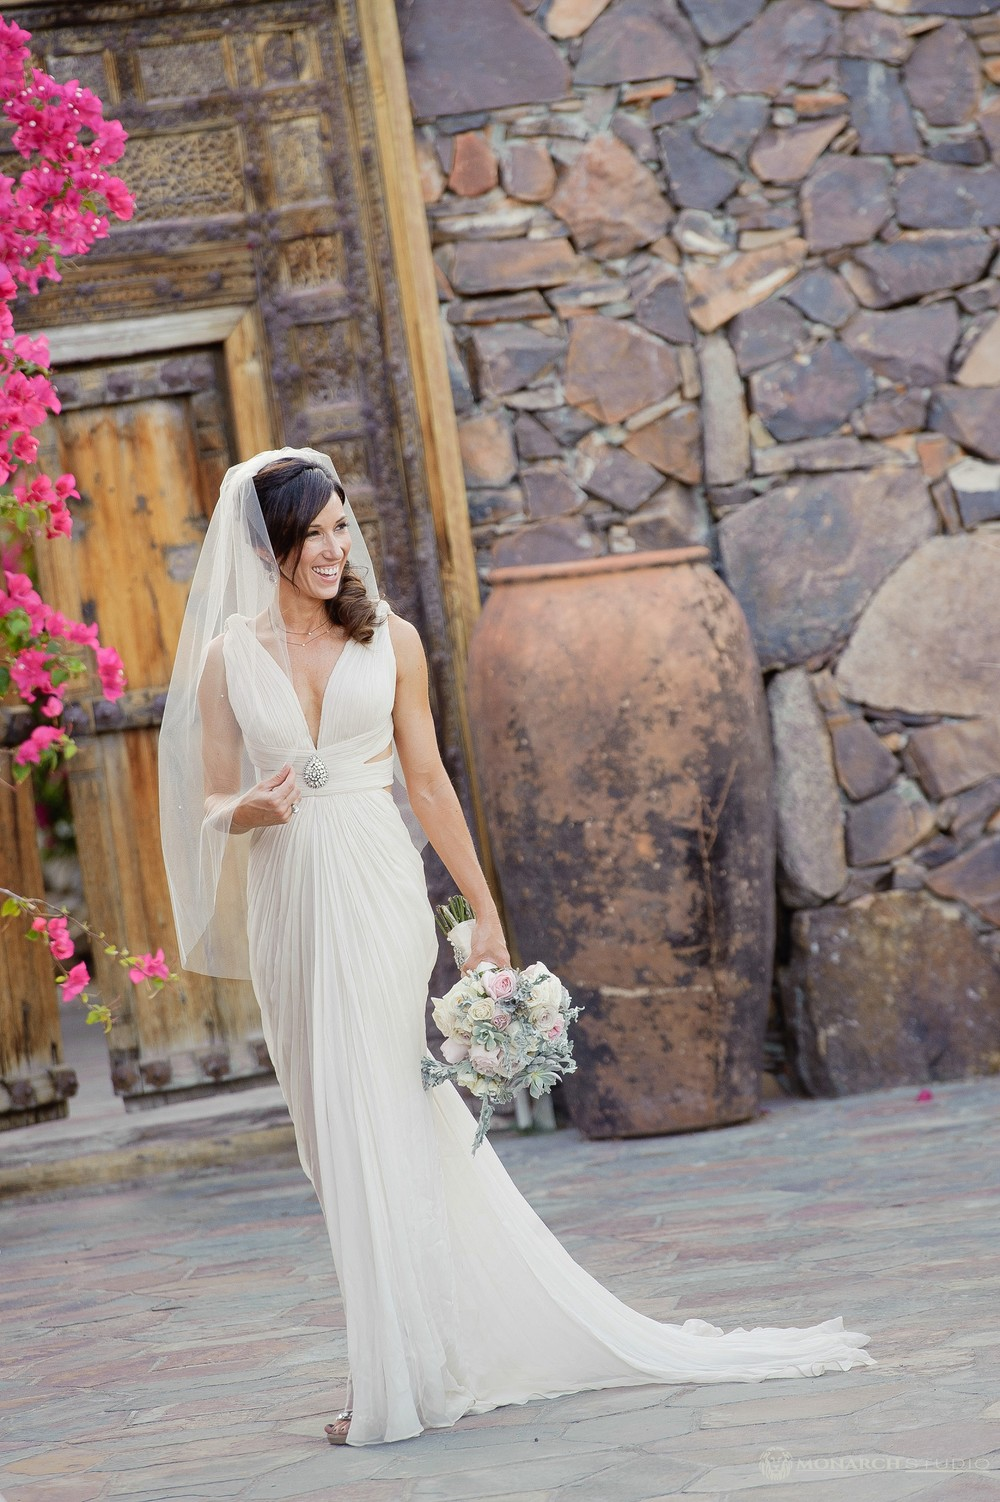 Palm-Springs-Wedding-California-Photographer-66.JPG